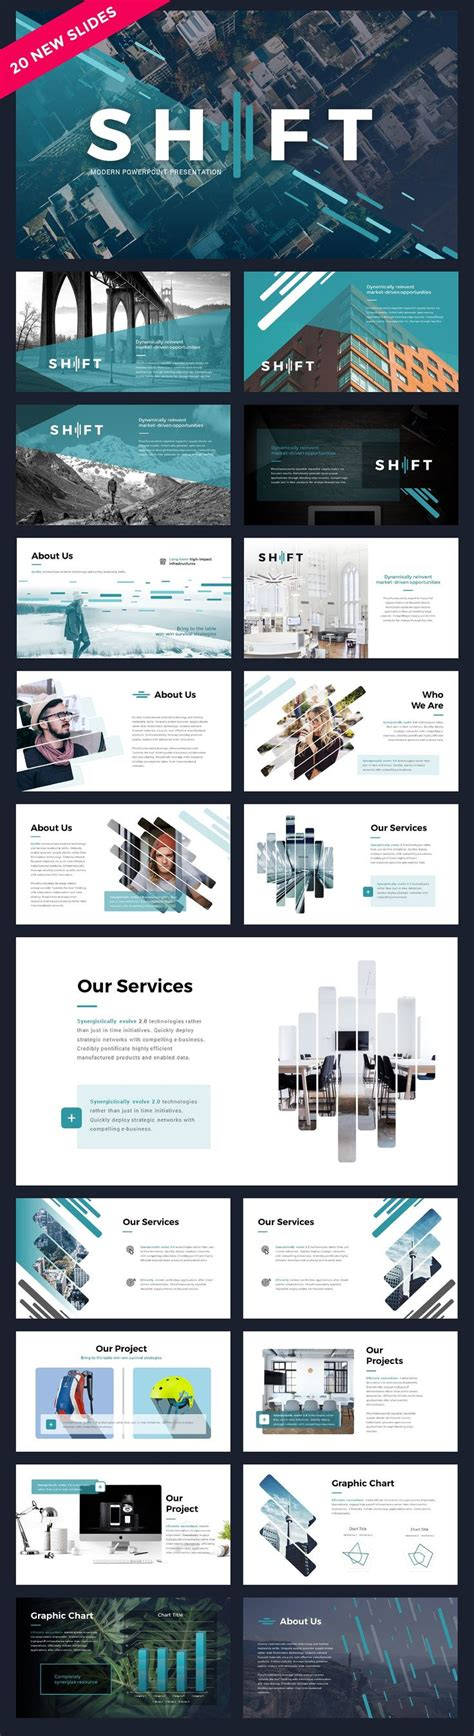 powerpoint design mode shift modern powerpoint template by reshapely on